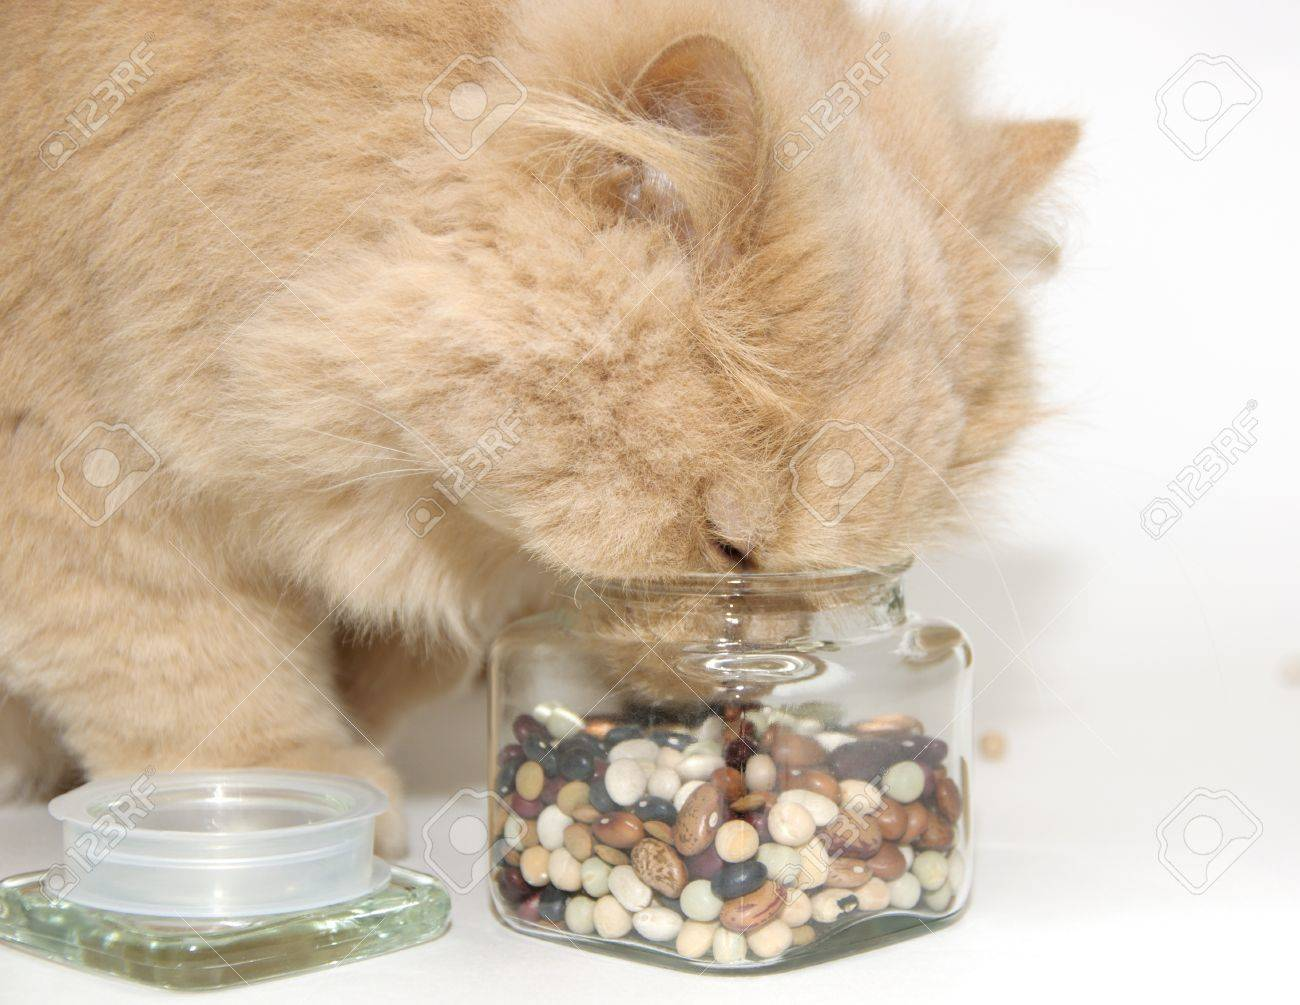 Persian cat smelling glass of cooking bean Stock Photo - 10989031